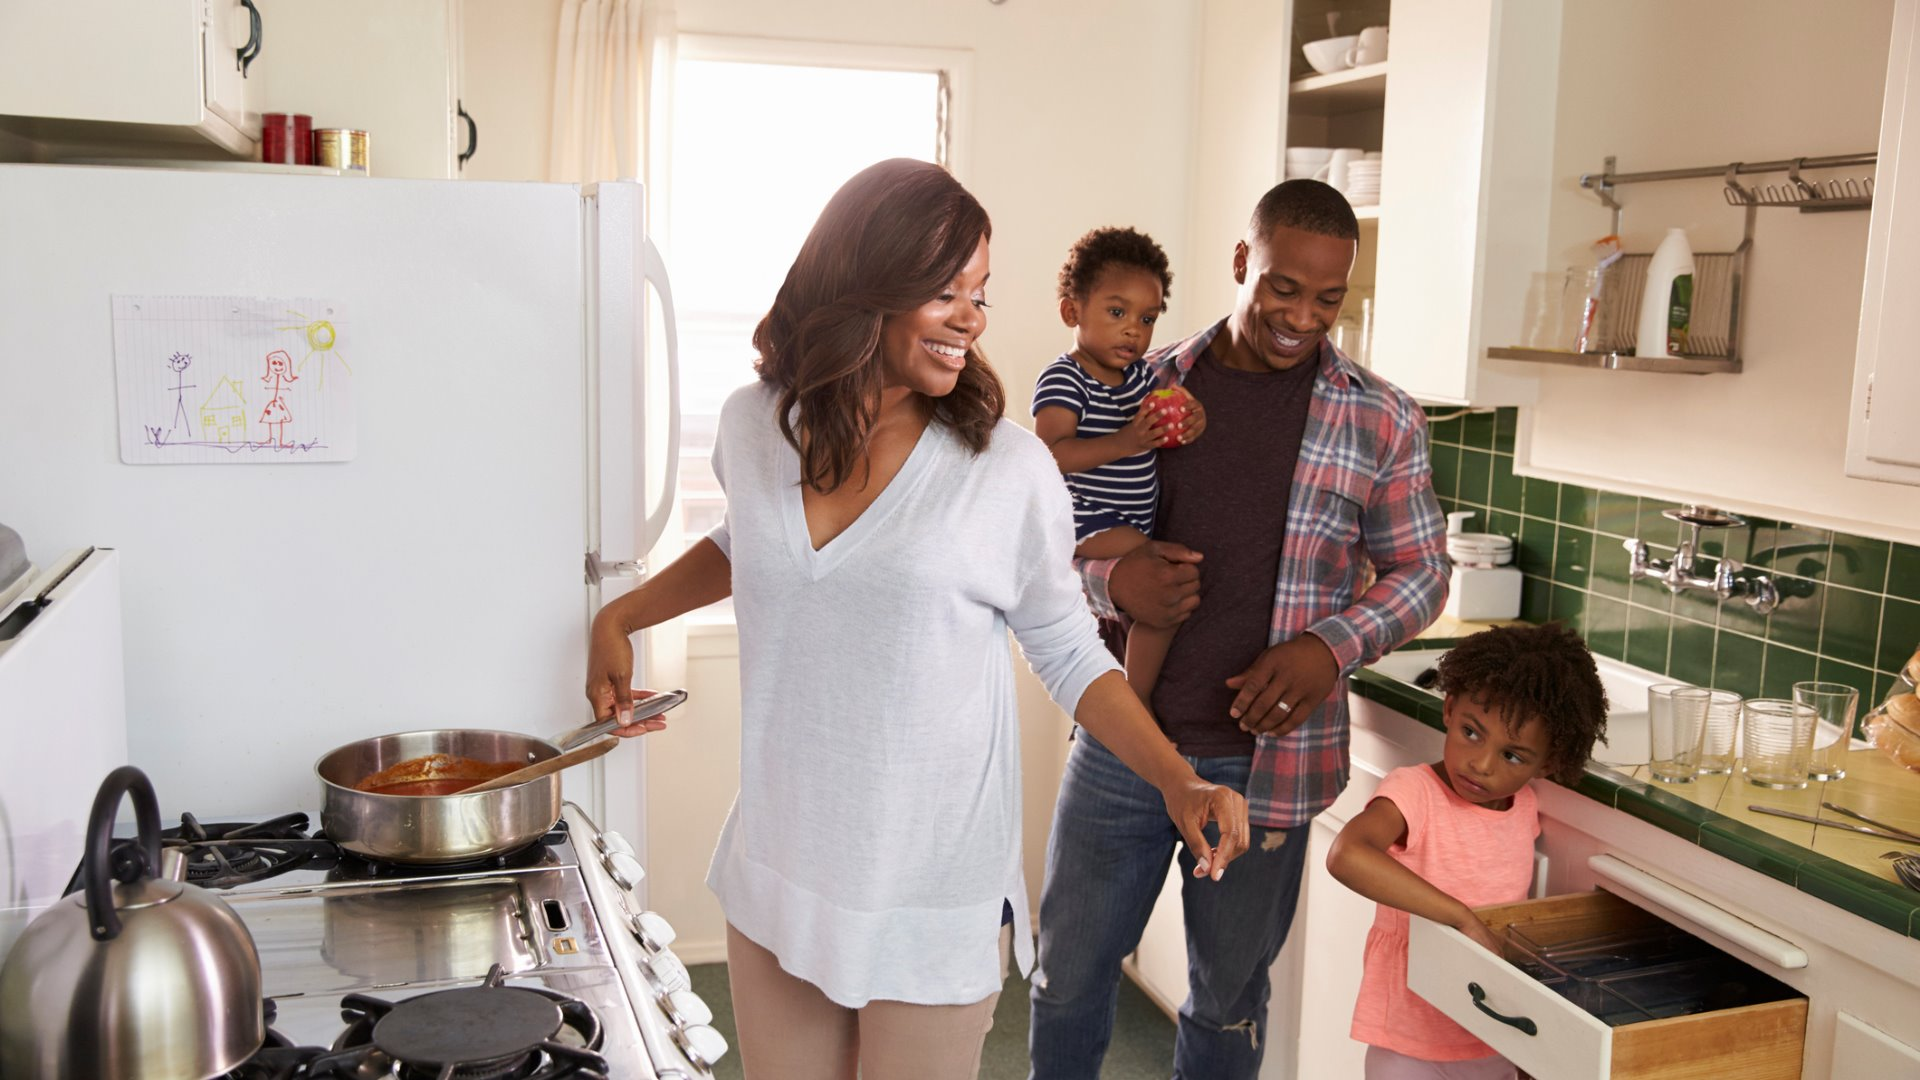 family-at-home-preparing-meal-in-kitchen-together-picture-